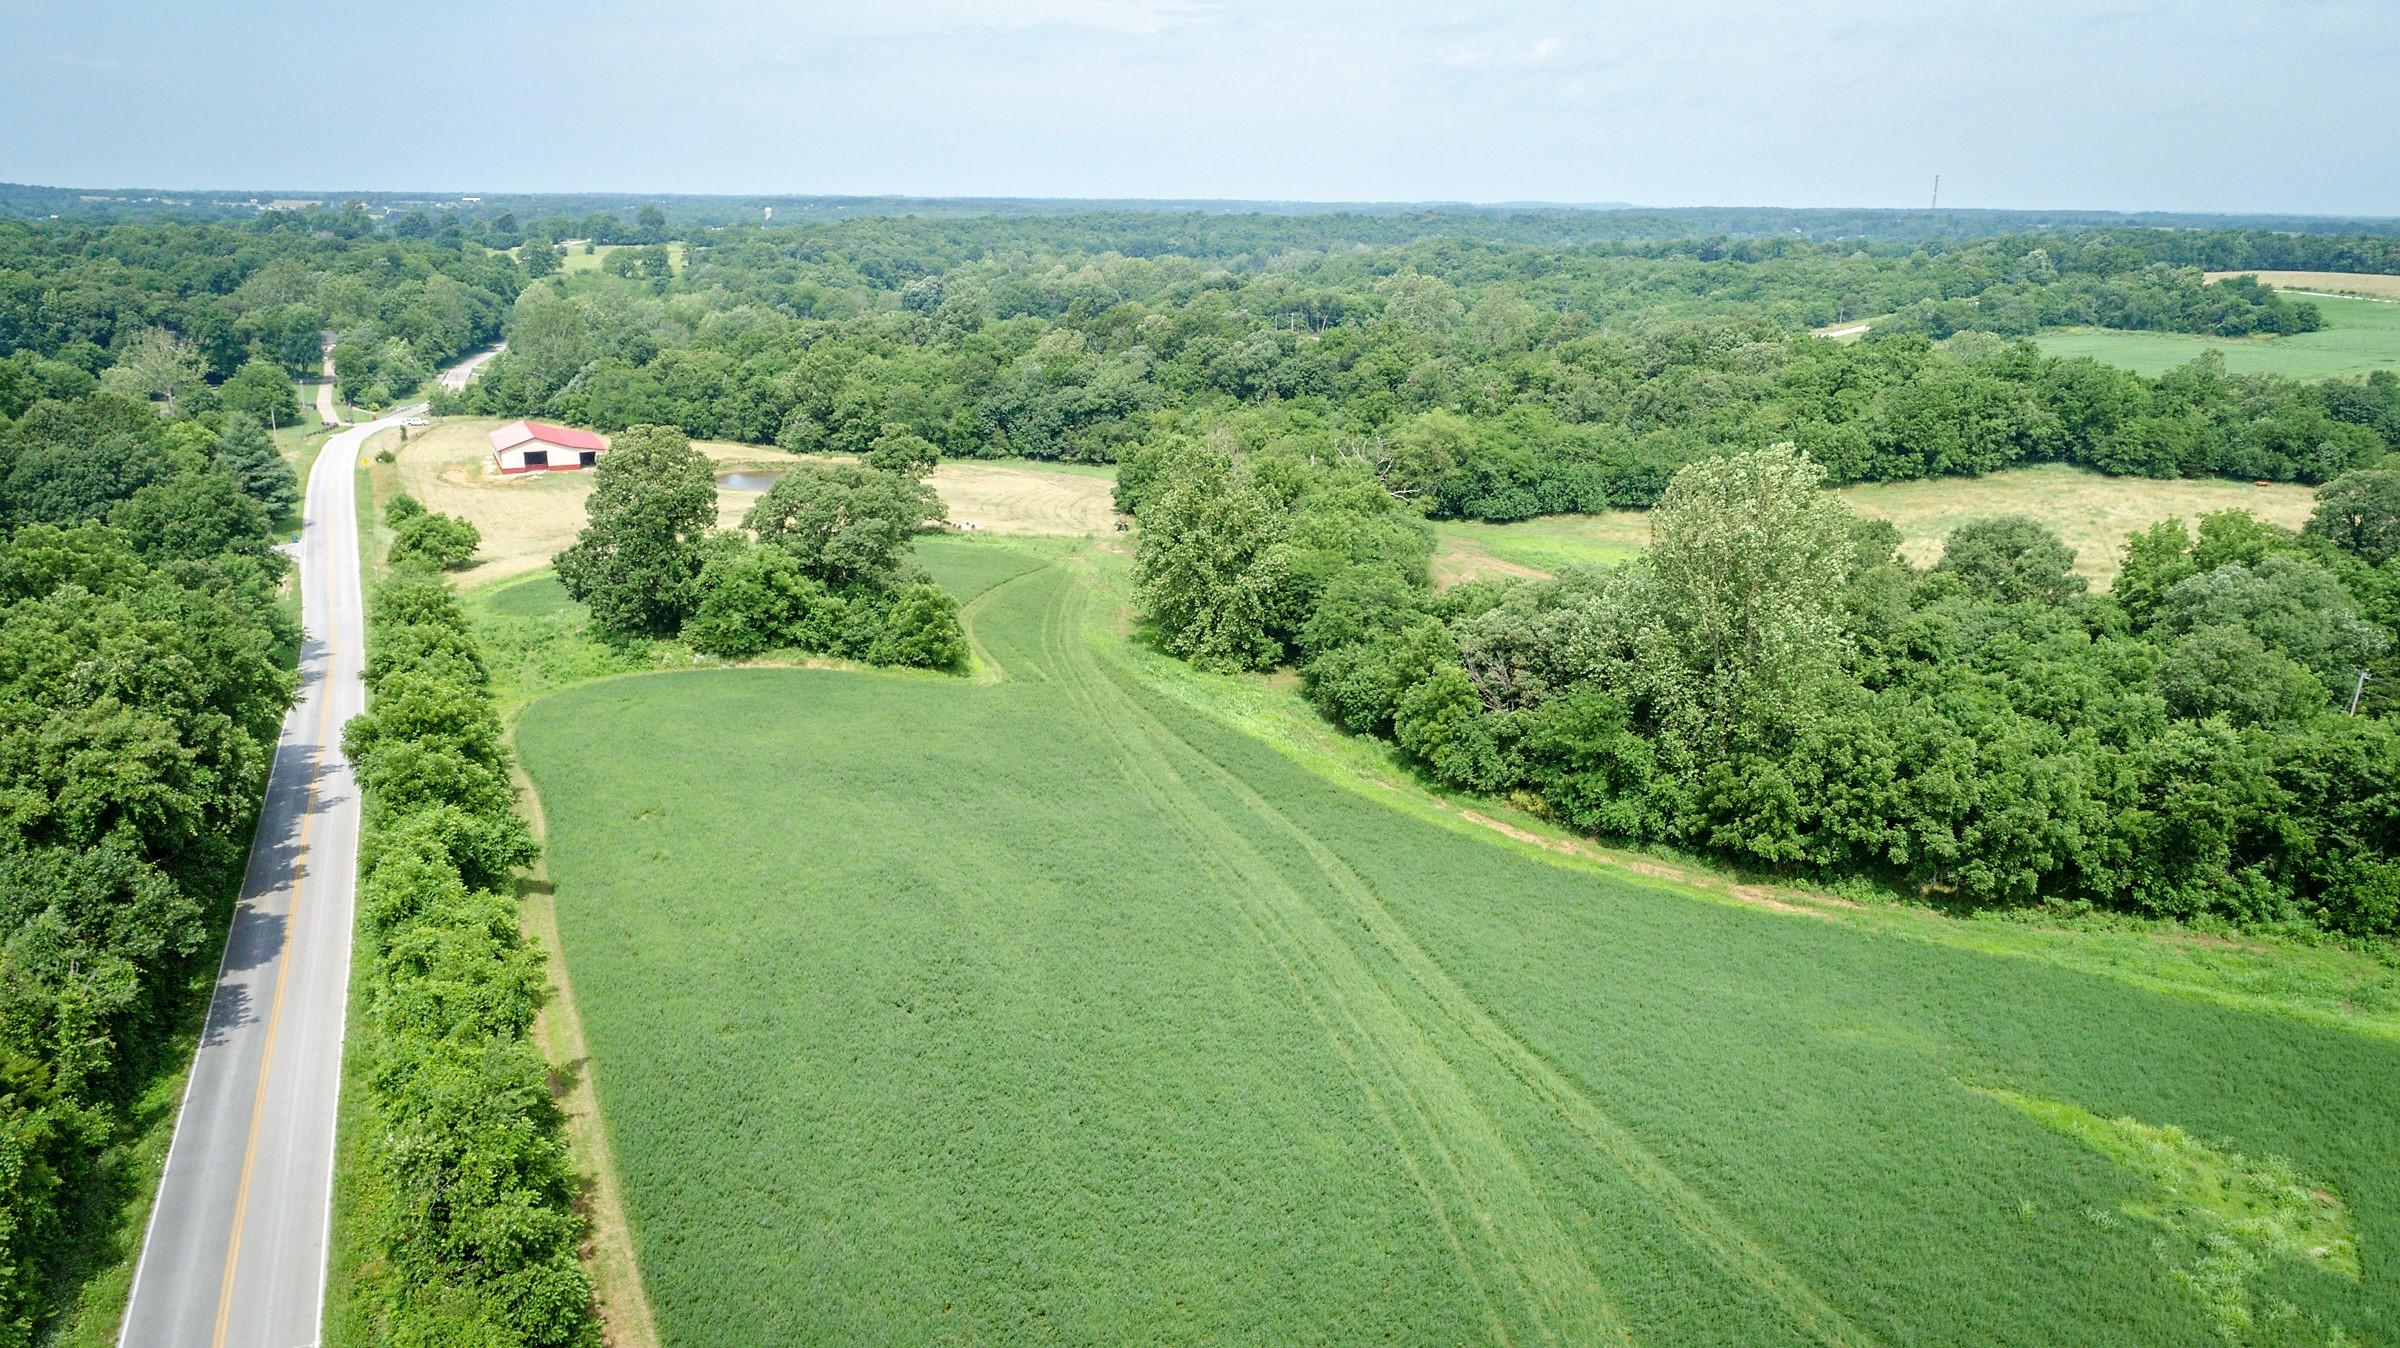 7acres West Farm Road Willard, MO 65781